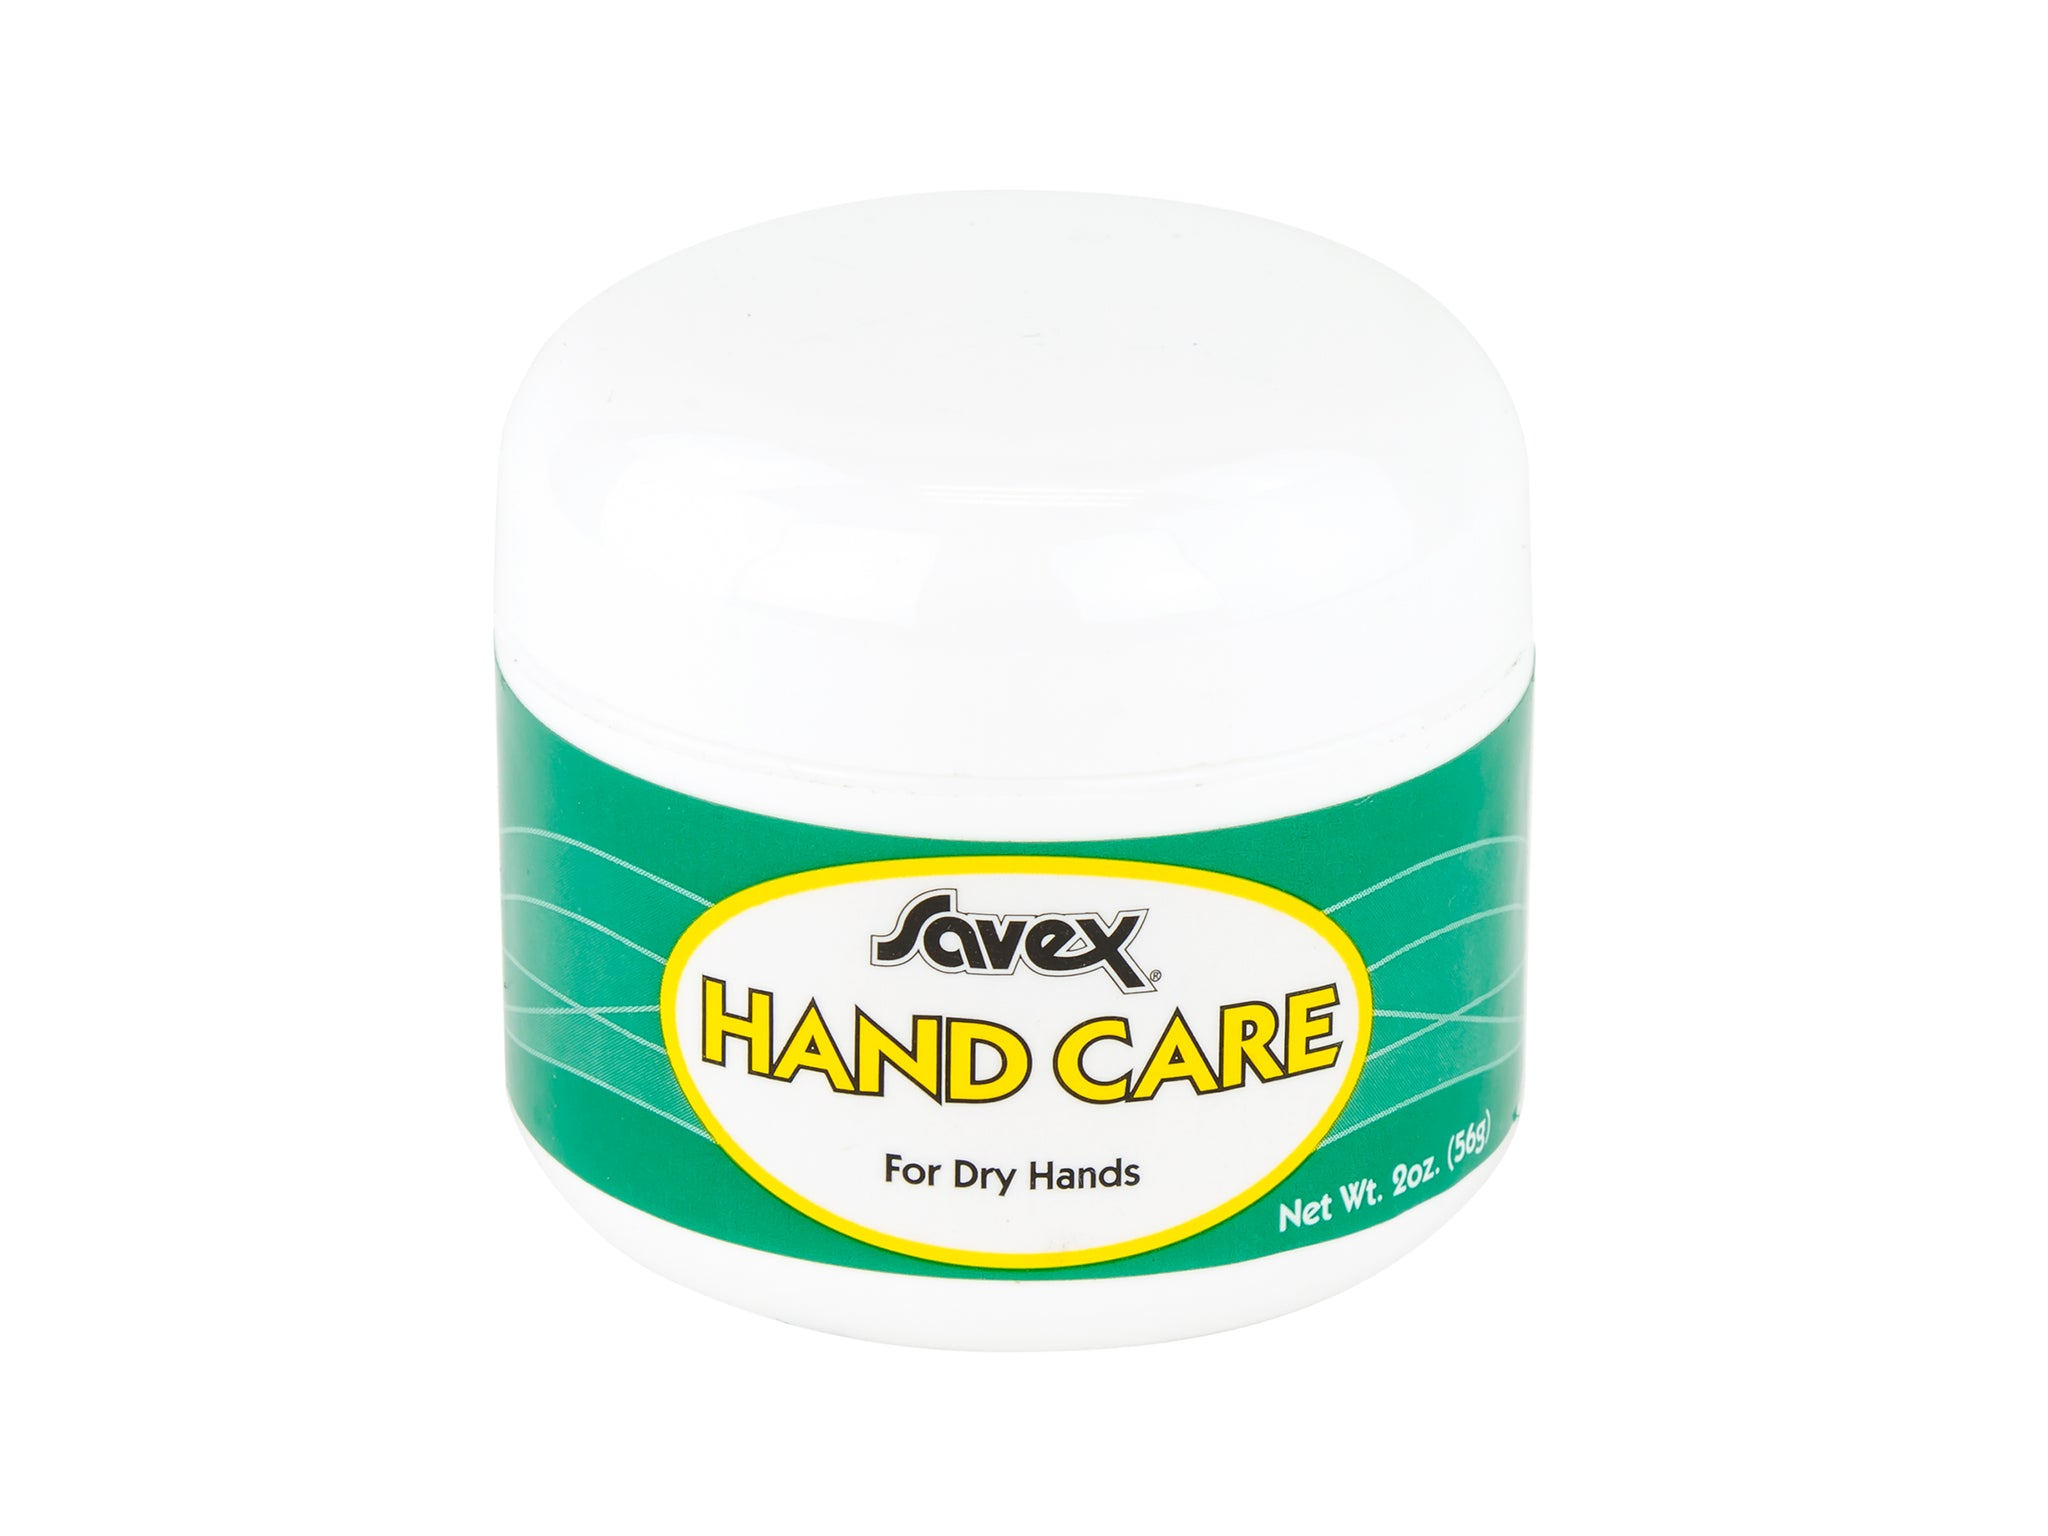 Extreme Moisturizing Hand Cream - Savex Hand Care Lotion - Smoothing and Hydrating Hand Balm